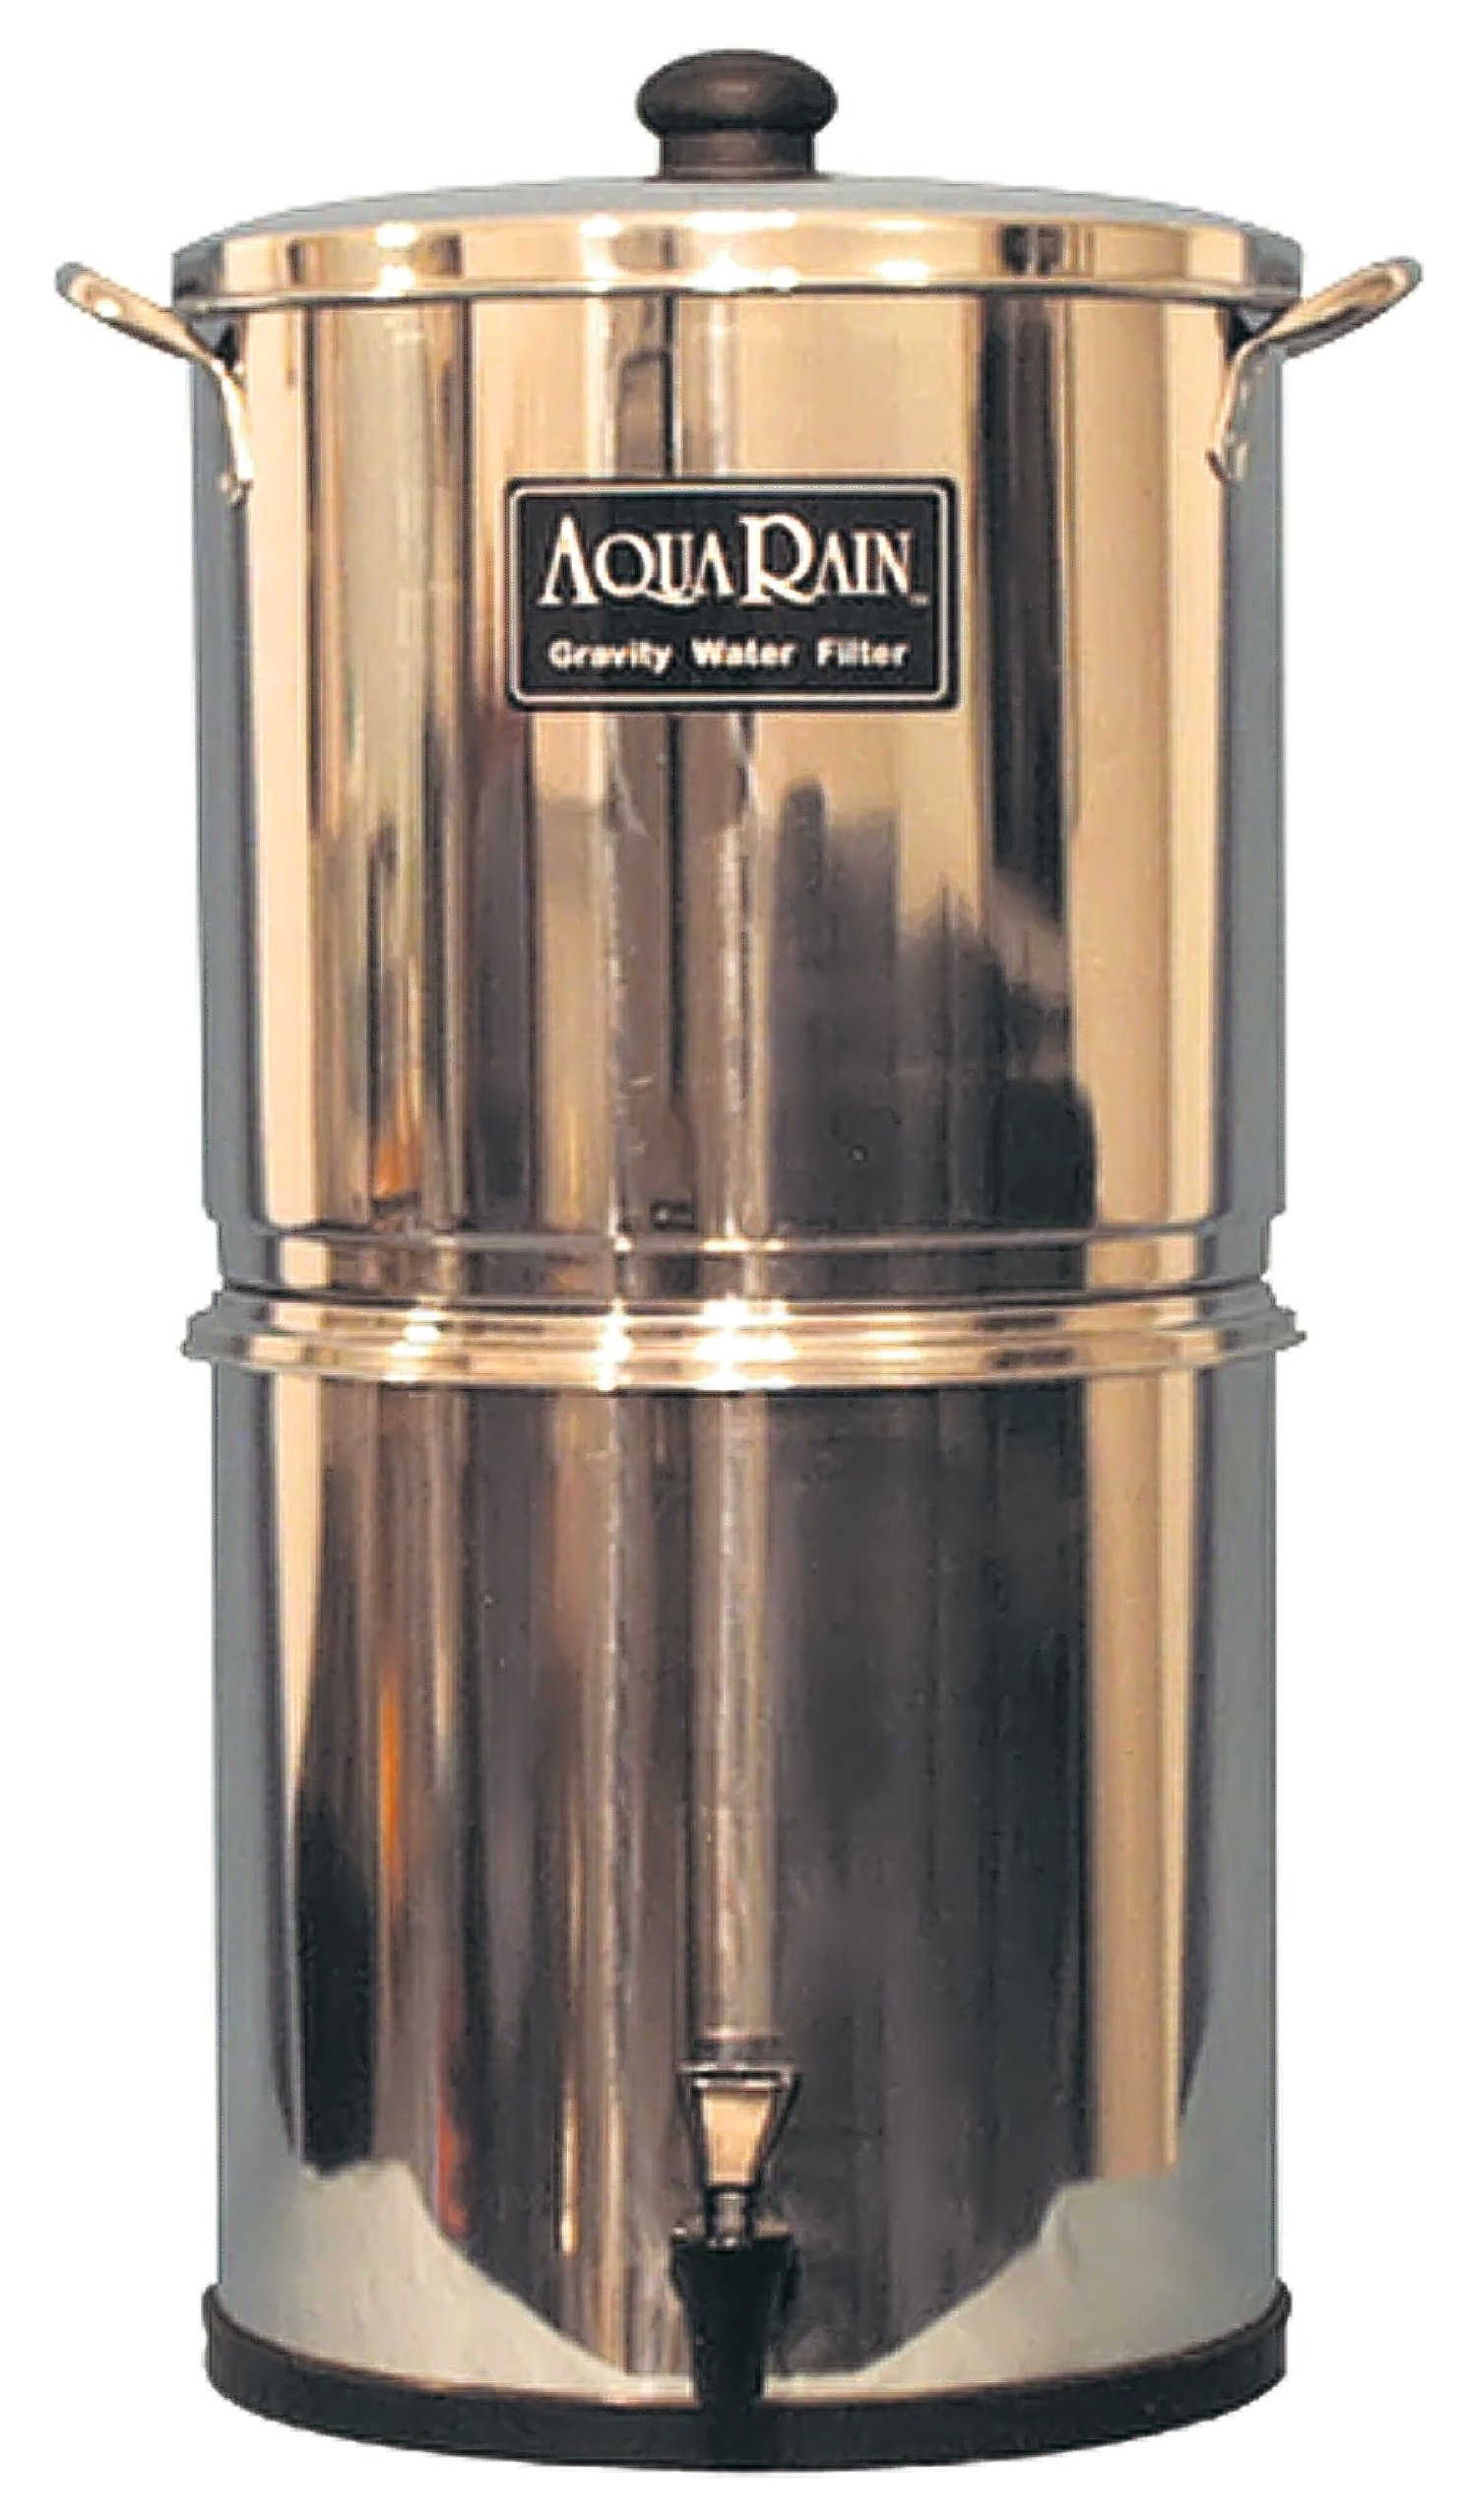 AquaRain Model 202 Gravity Water Filter by AquaRain